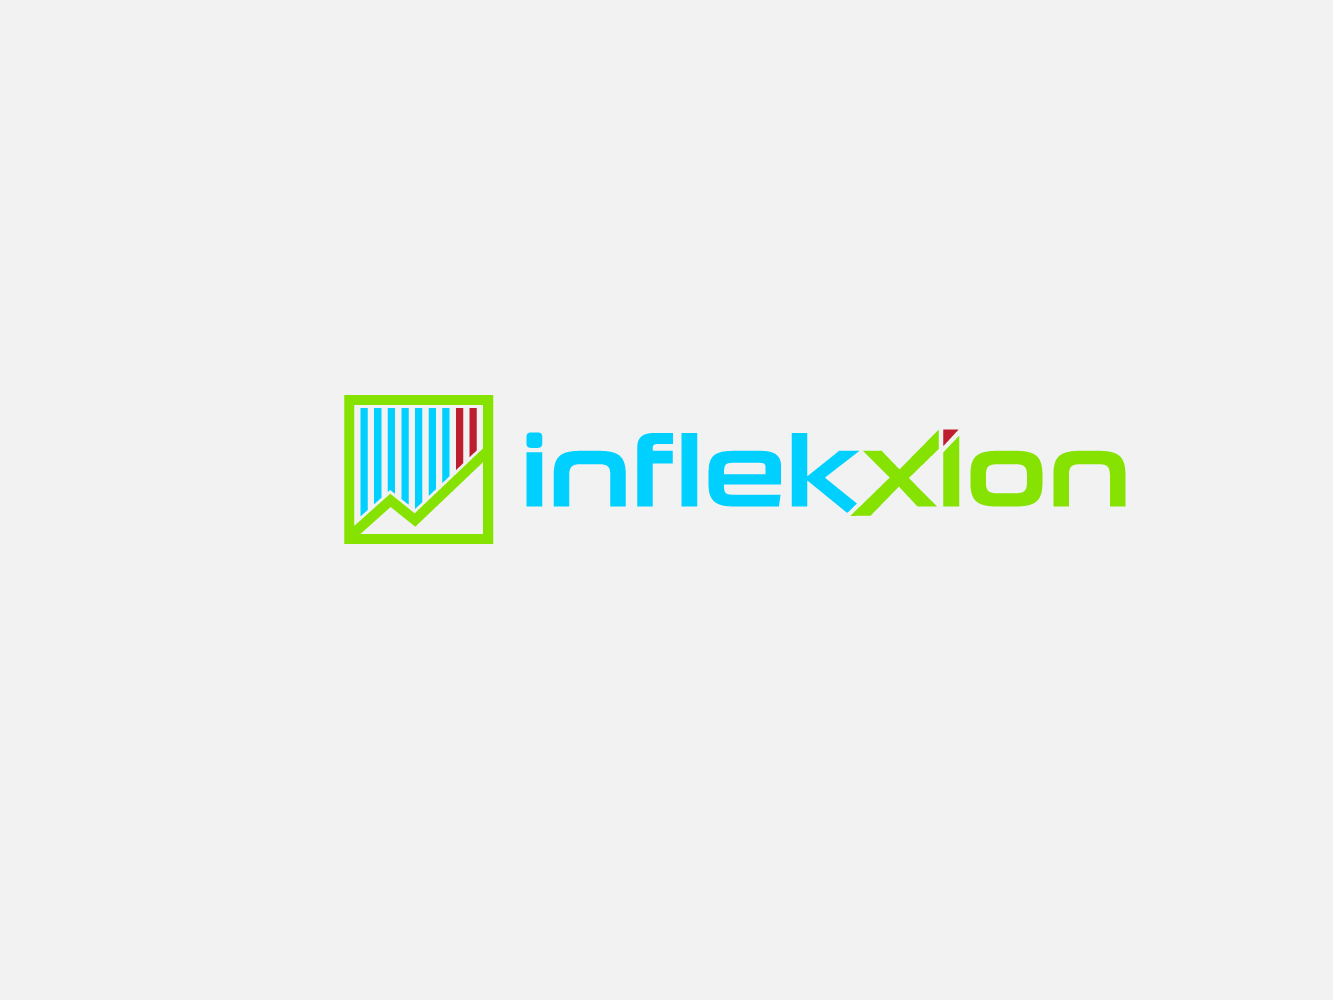 Logo Design by Jerameel Cabautan - Entry No. 136 in the Logo Design Contest Professional Logo Design for Inflekxion.